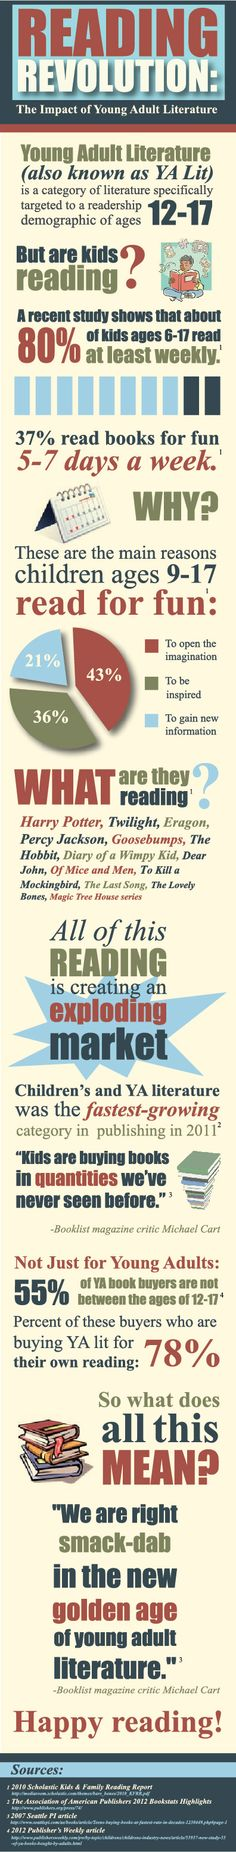 """""""Reading Revolution, the Impact of Young Adult Literature"""" (#INFOGRAPHIC)"""